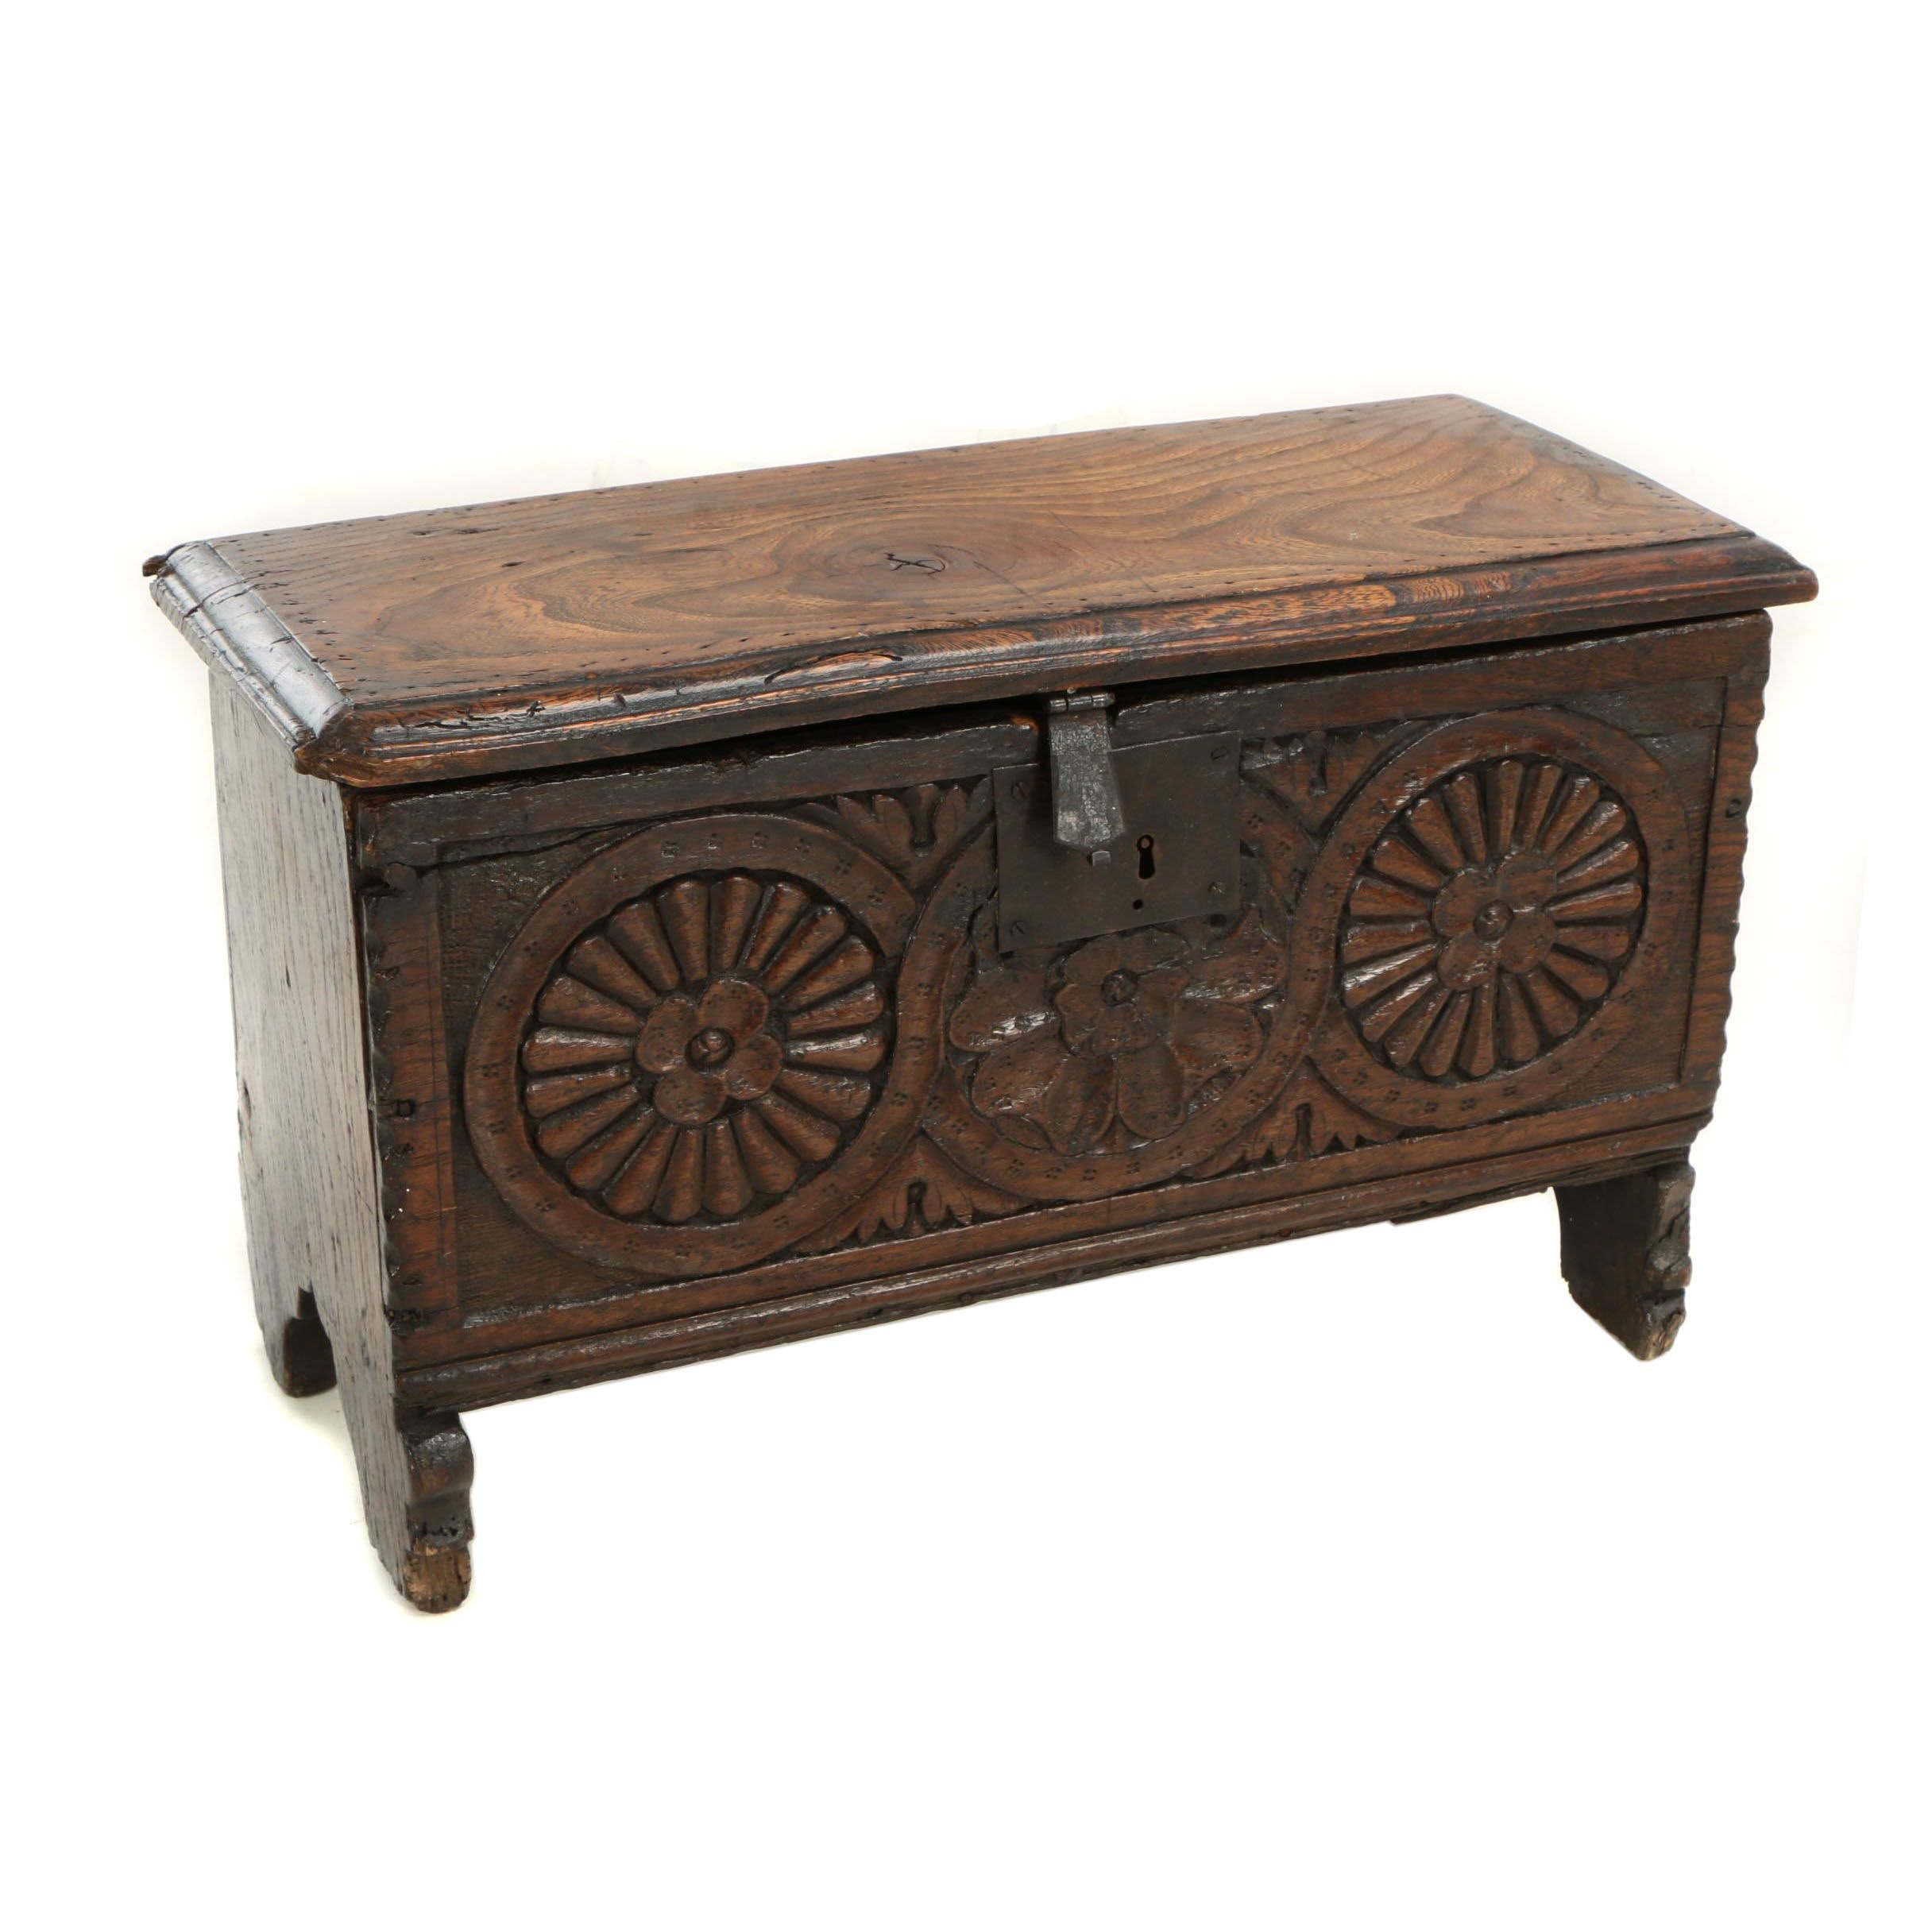 Small English Carved Oak and Elm Plank Chest, 17th/18th Century